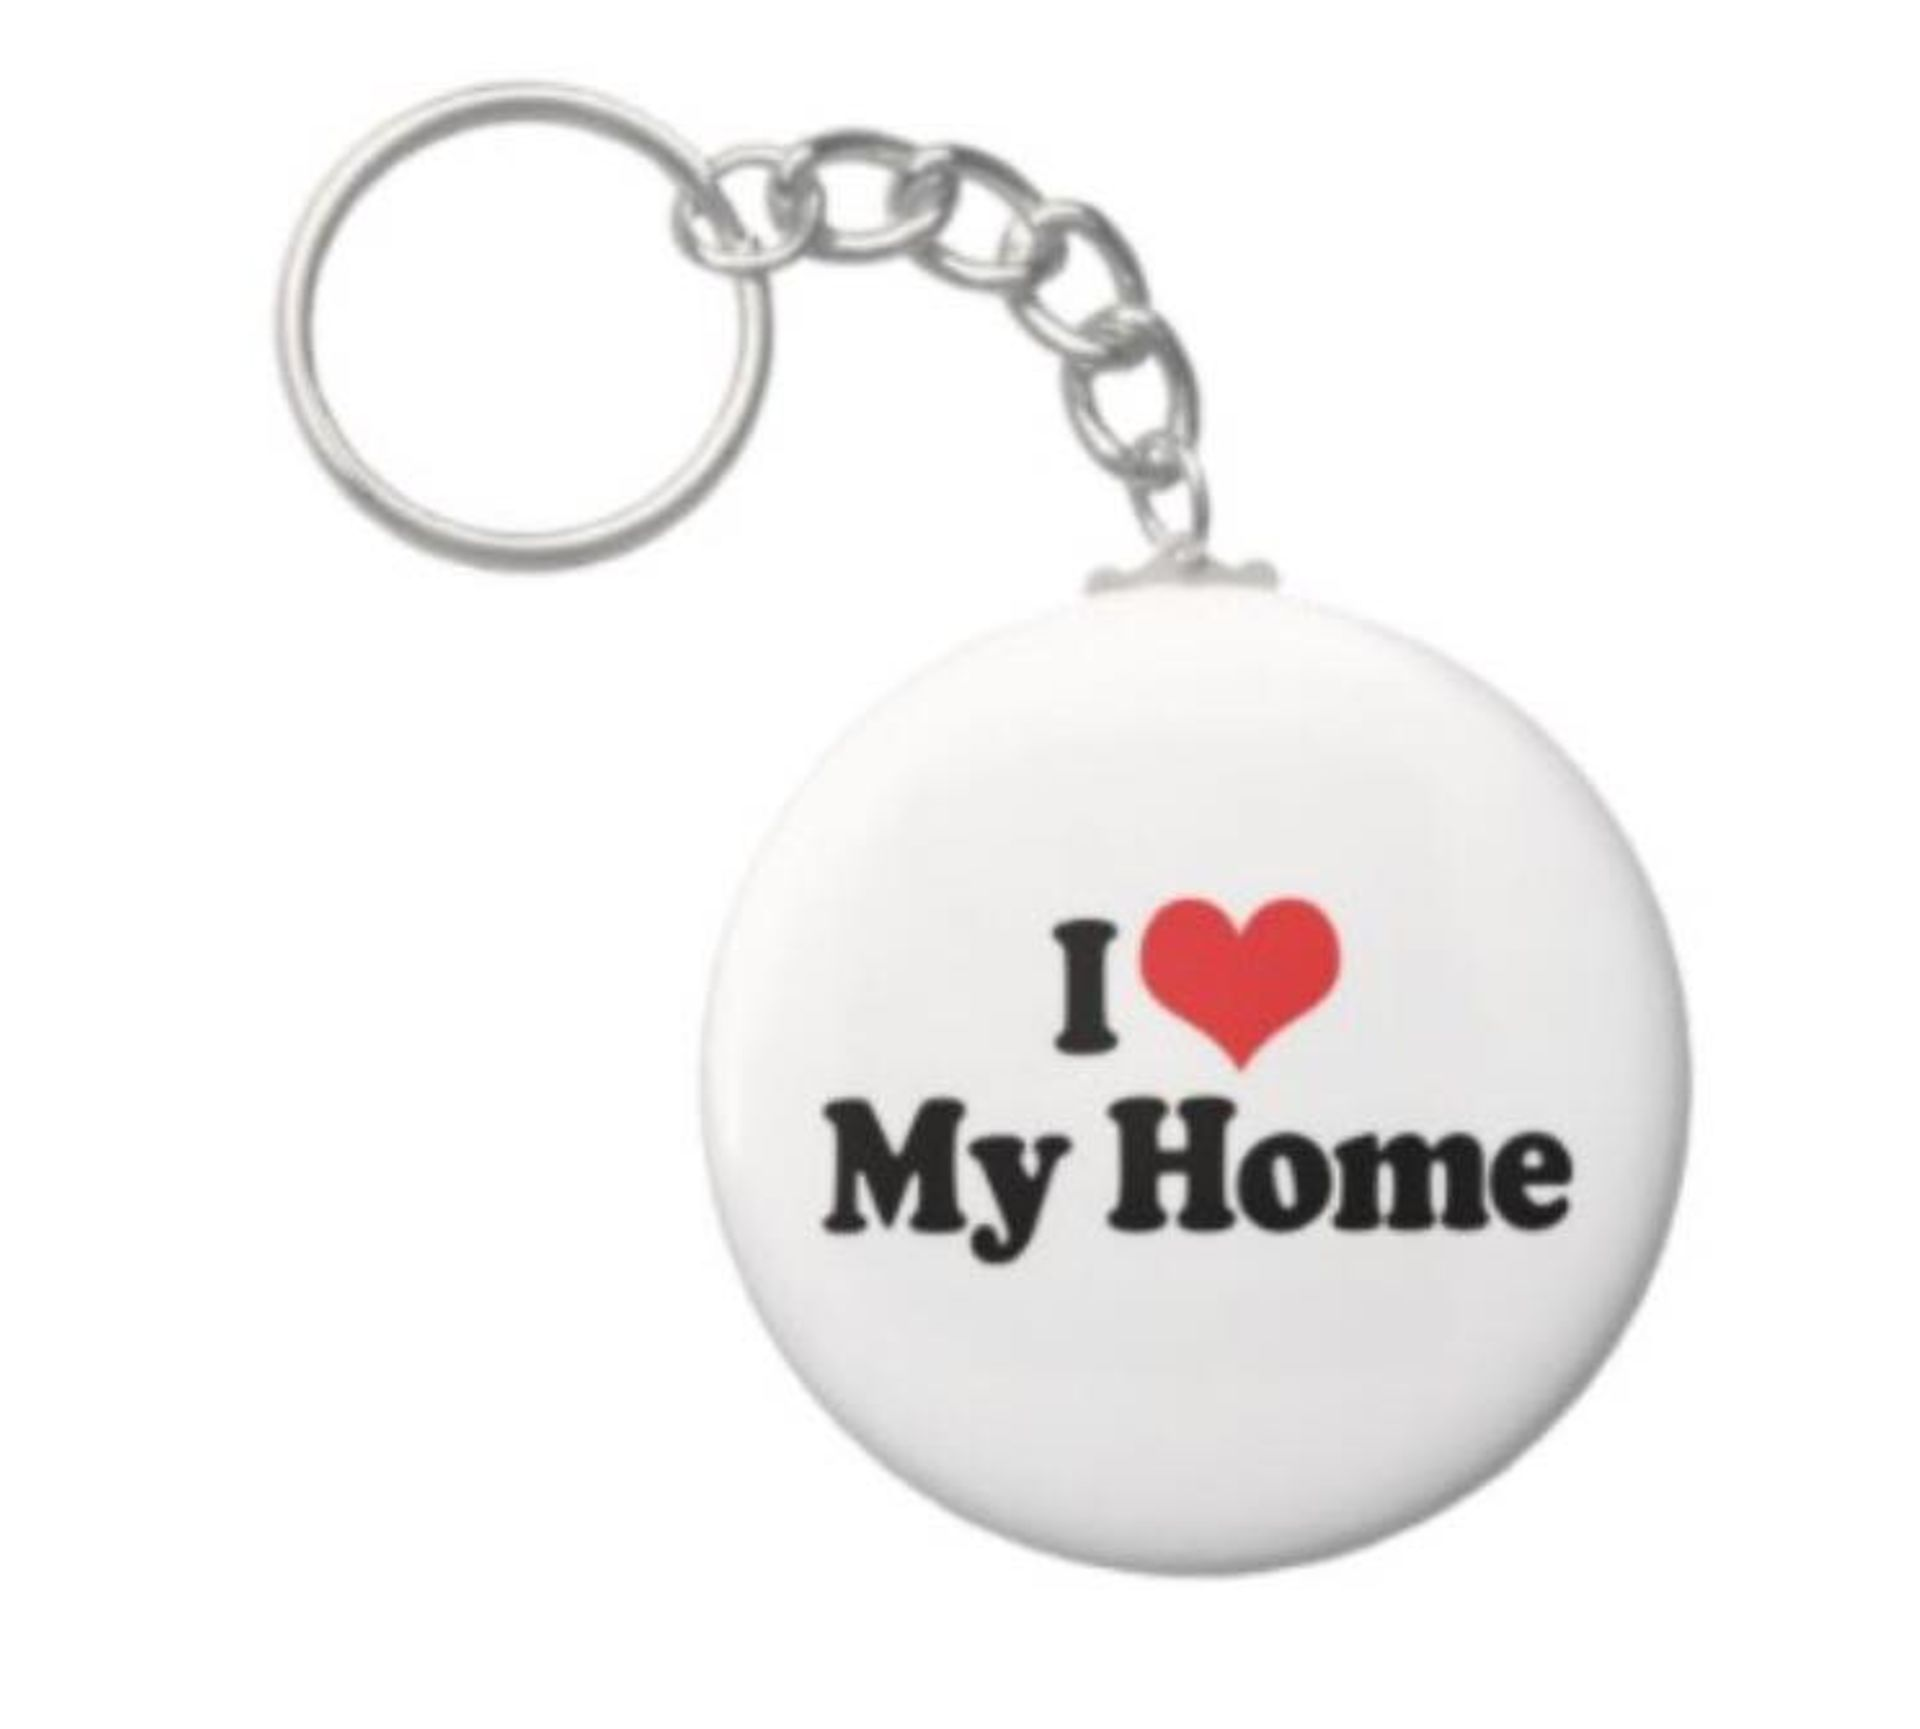 6 quick tips to LOVE your home!